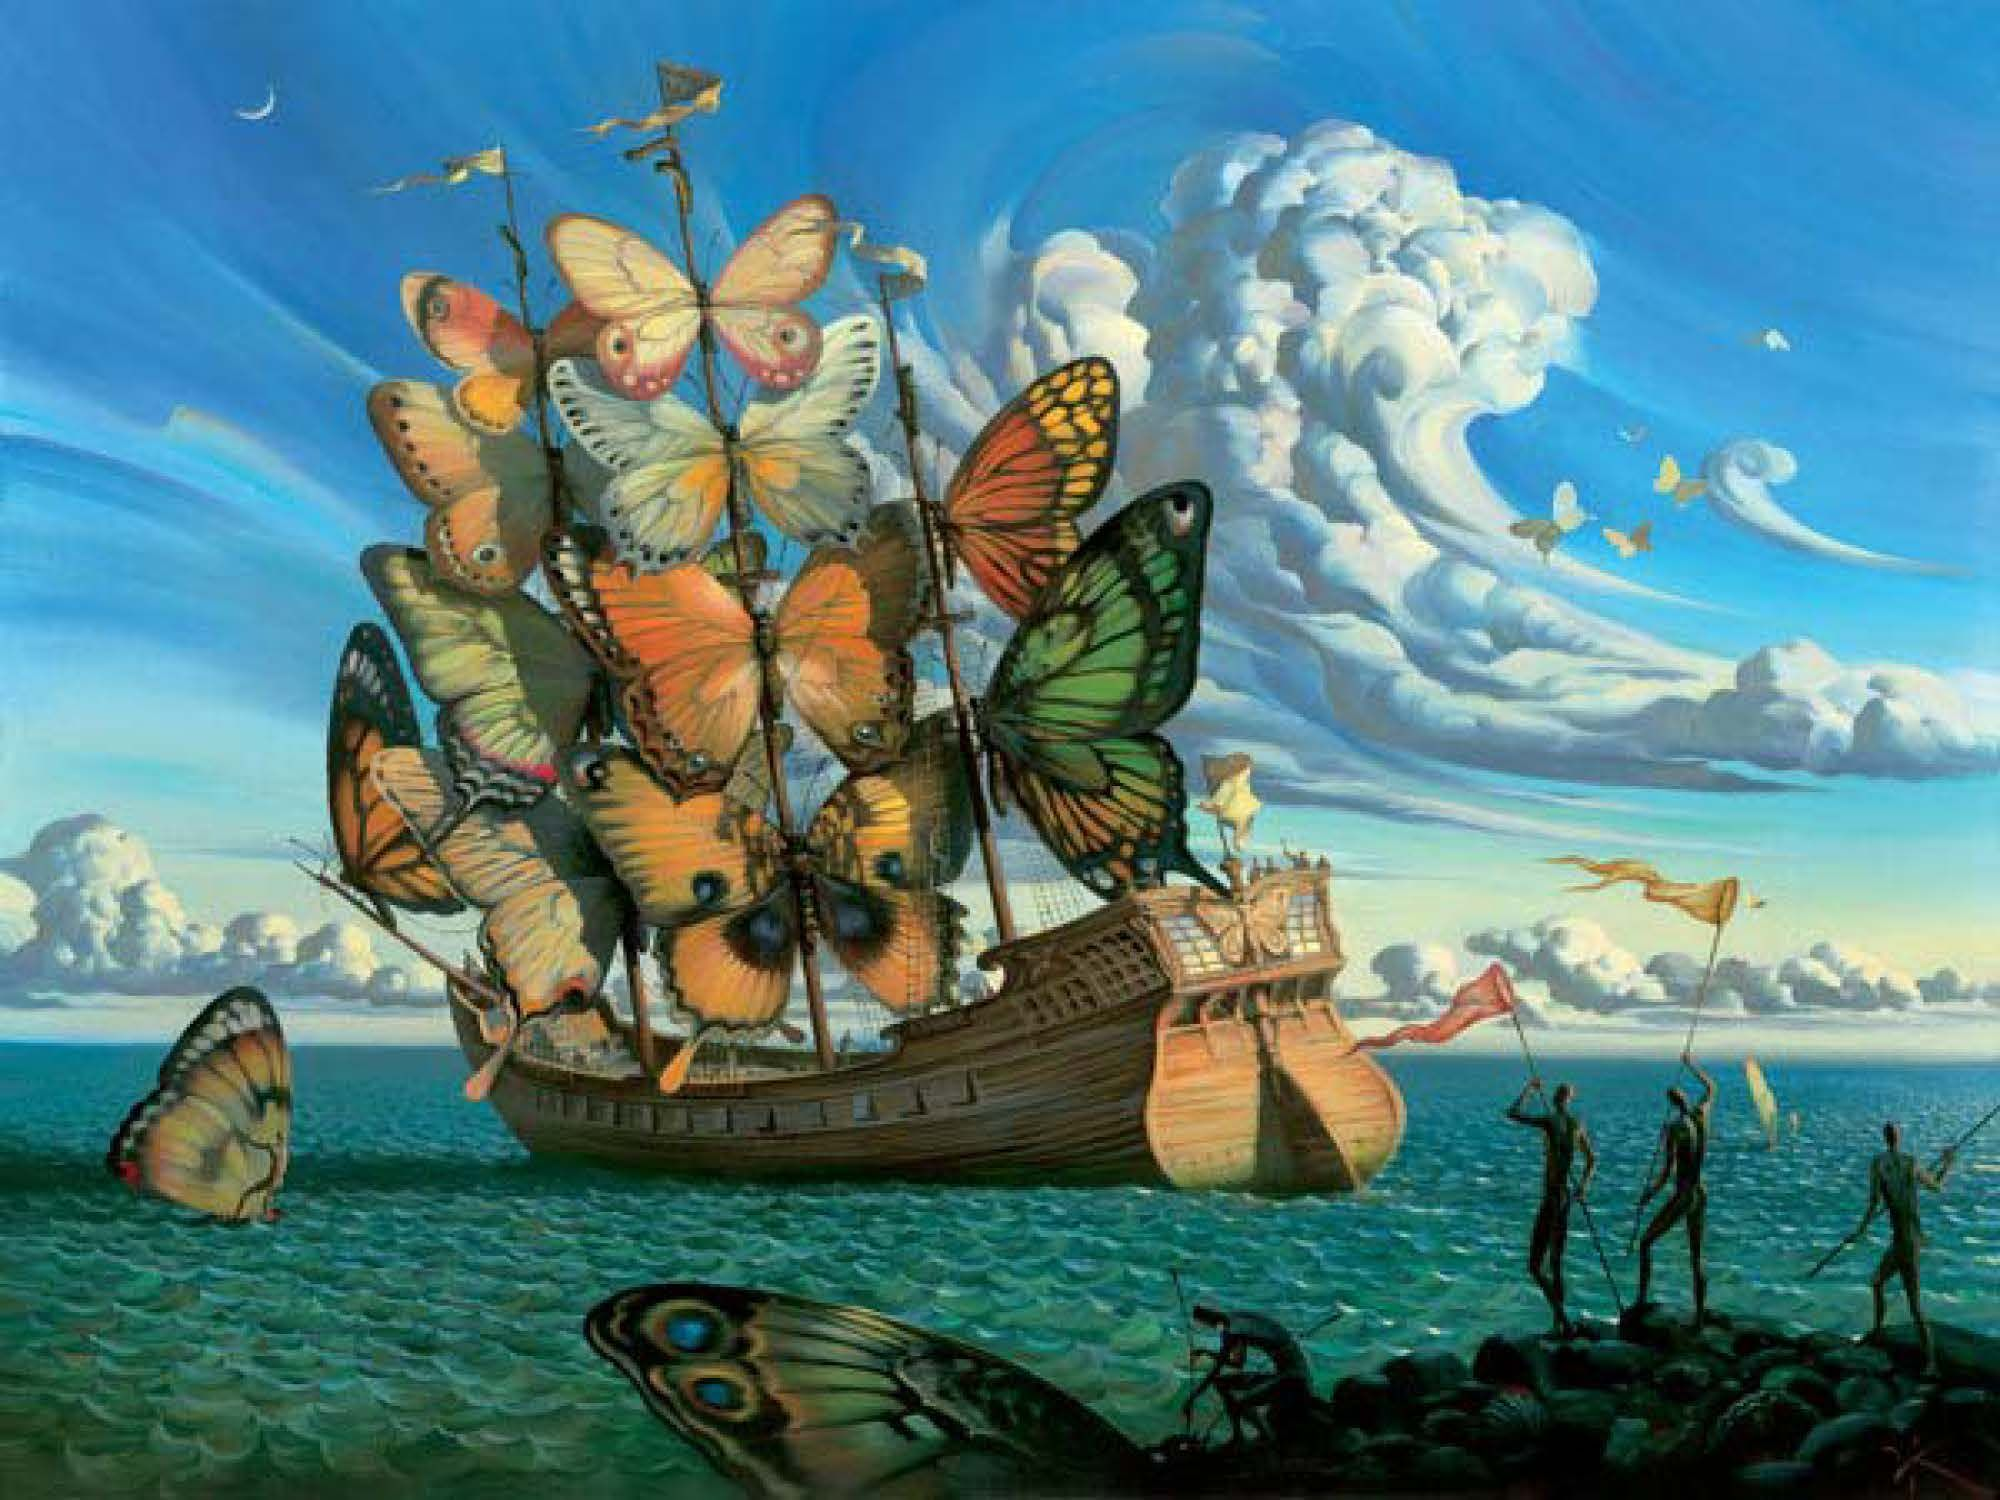 salvador dali paintings - Google Search | Living Paintings Statue ...